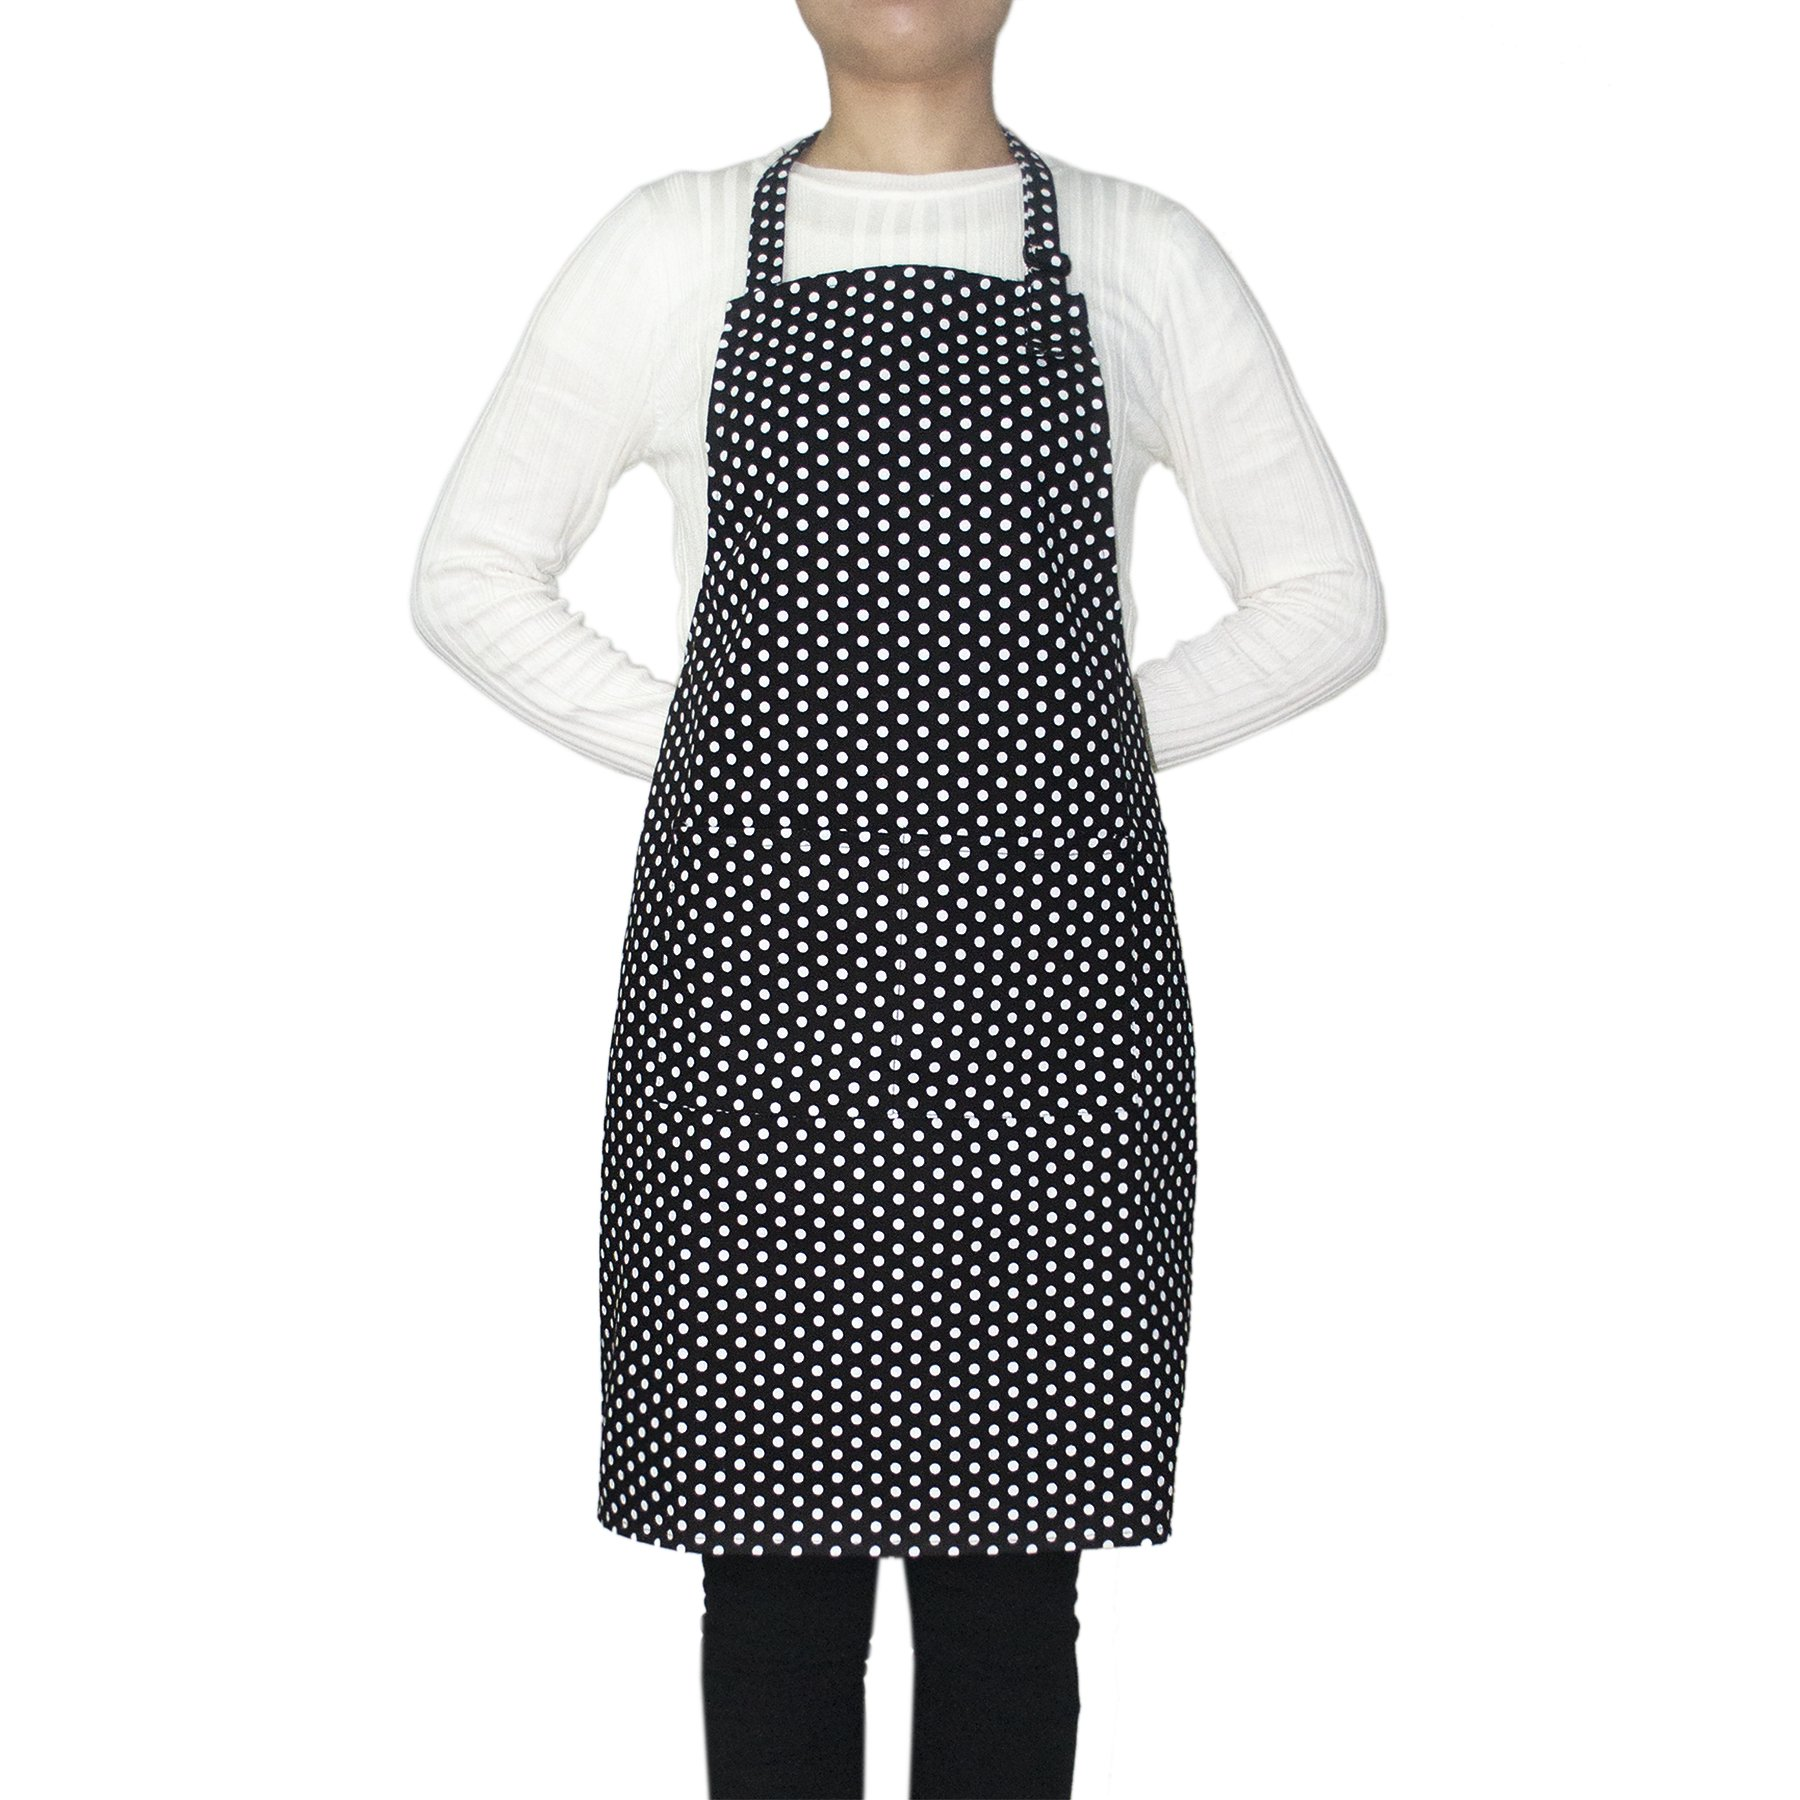 Opromo 12-Pack Cotton Canvas Adjustable Chef Kitchen Aprons-Black Dot-XL